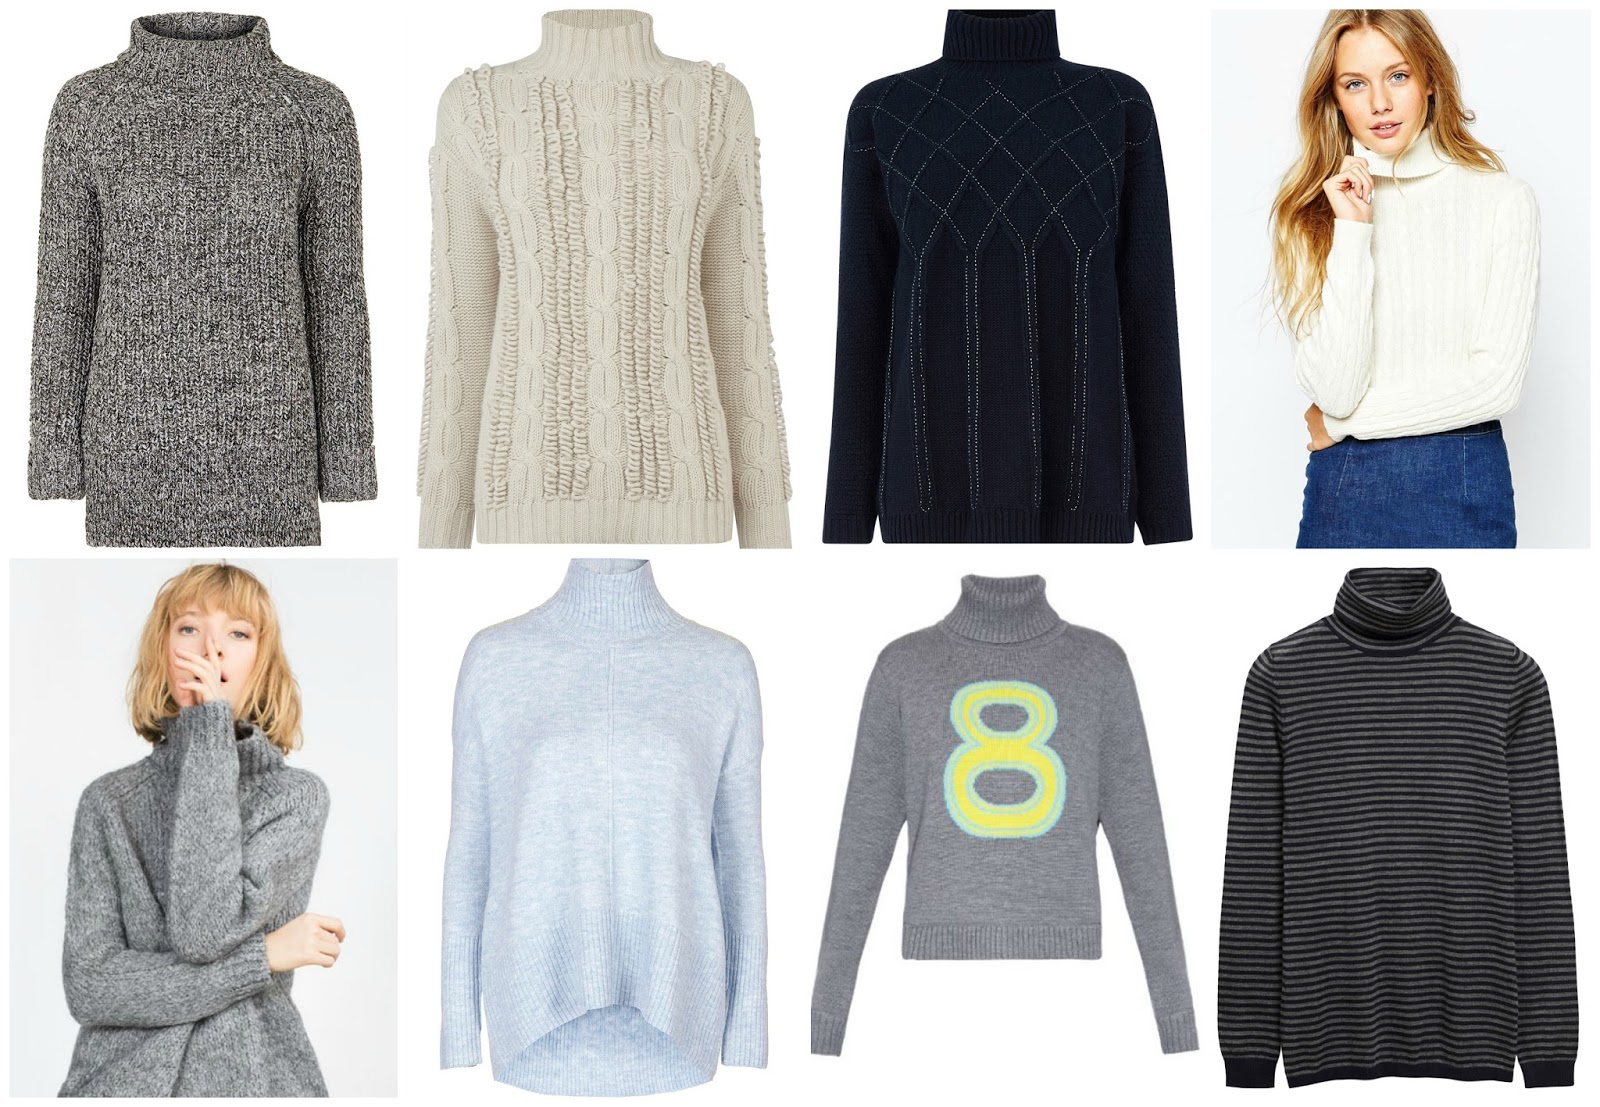 172bcc14 Tweed Oversized Jumper, £42, Topshop; Hand Knit Loopy Jumper, £130,  Warehouse; Bugle Embellished Cable Jumper, £55, Warehouse; Cable Knit Roll  Neck Jumper, ...